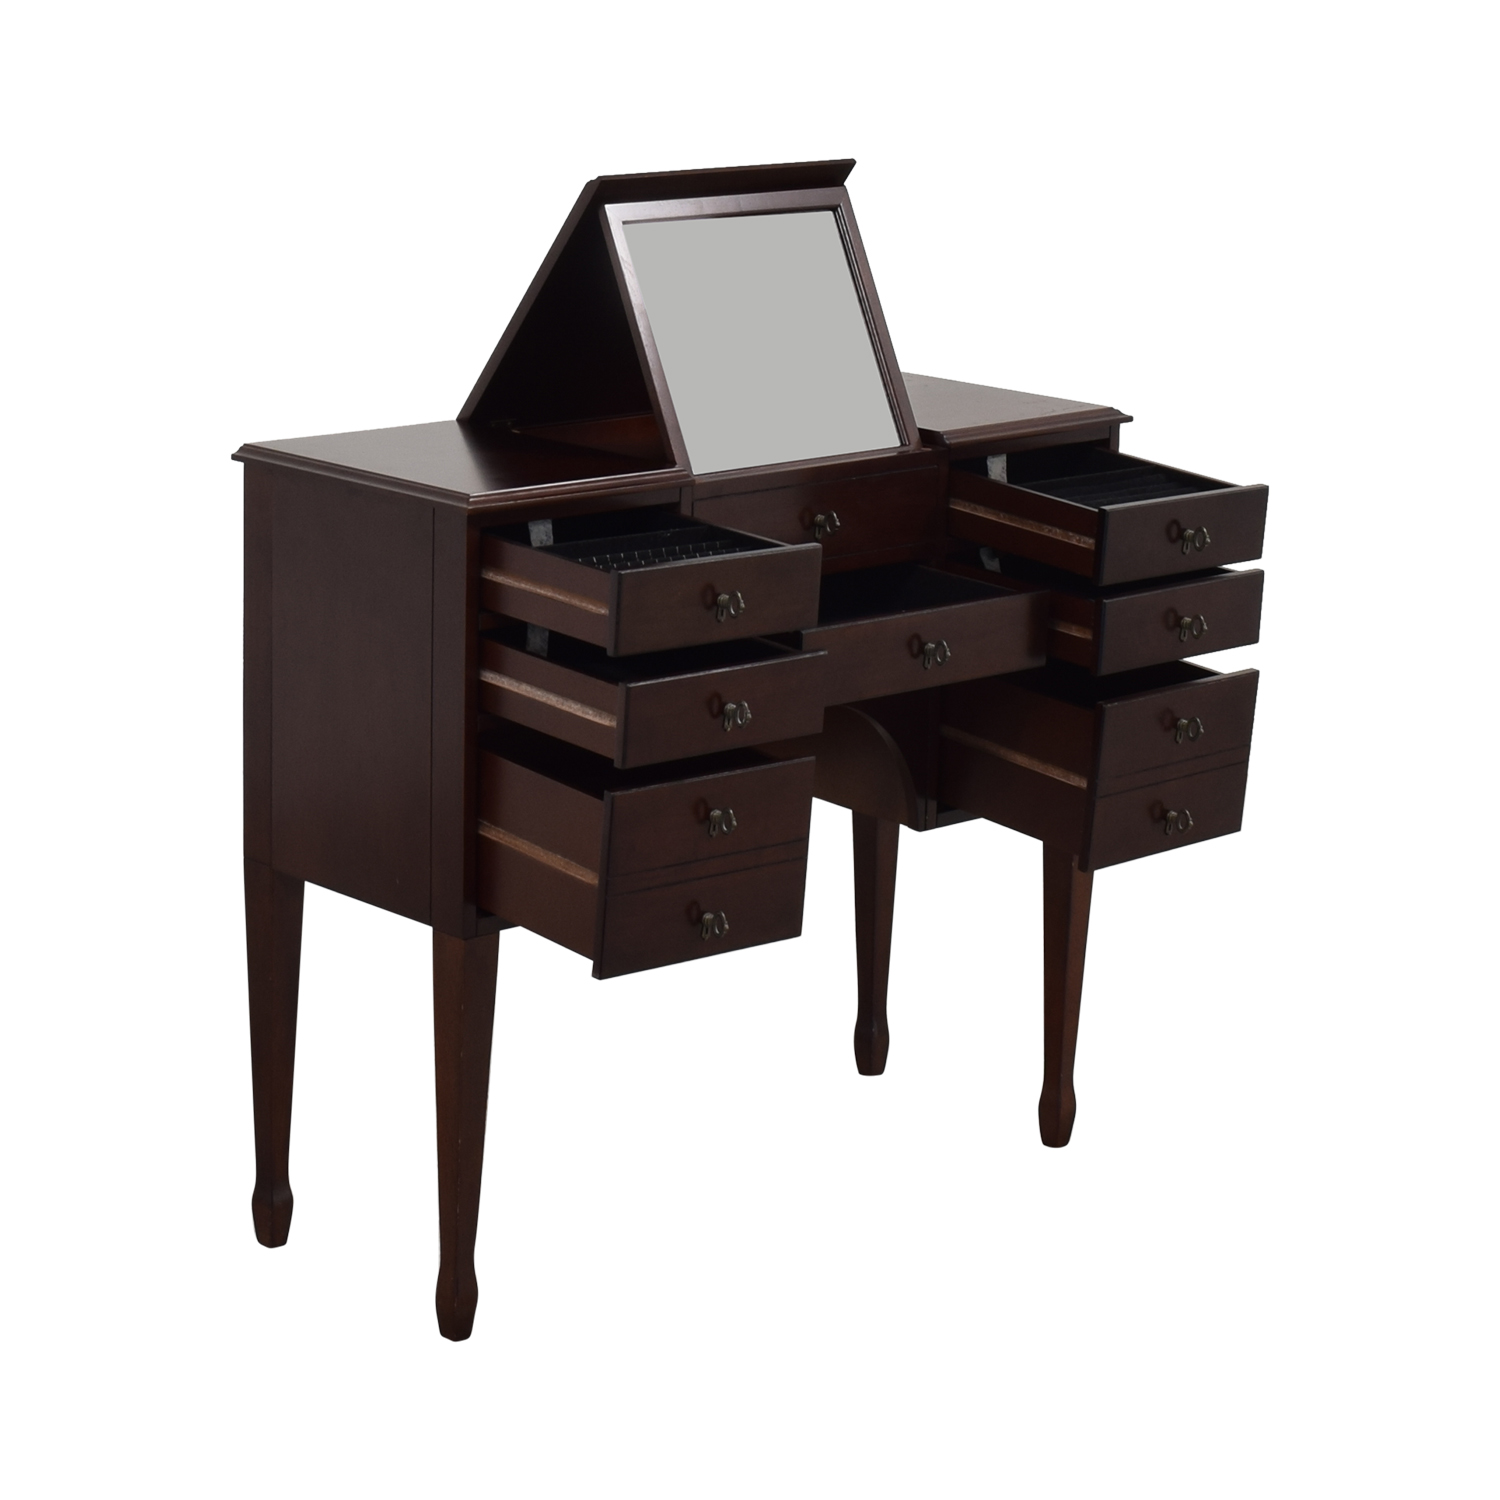 Bombay Company Vanity Table with Fold Down Mirror / Tables